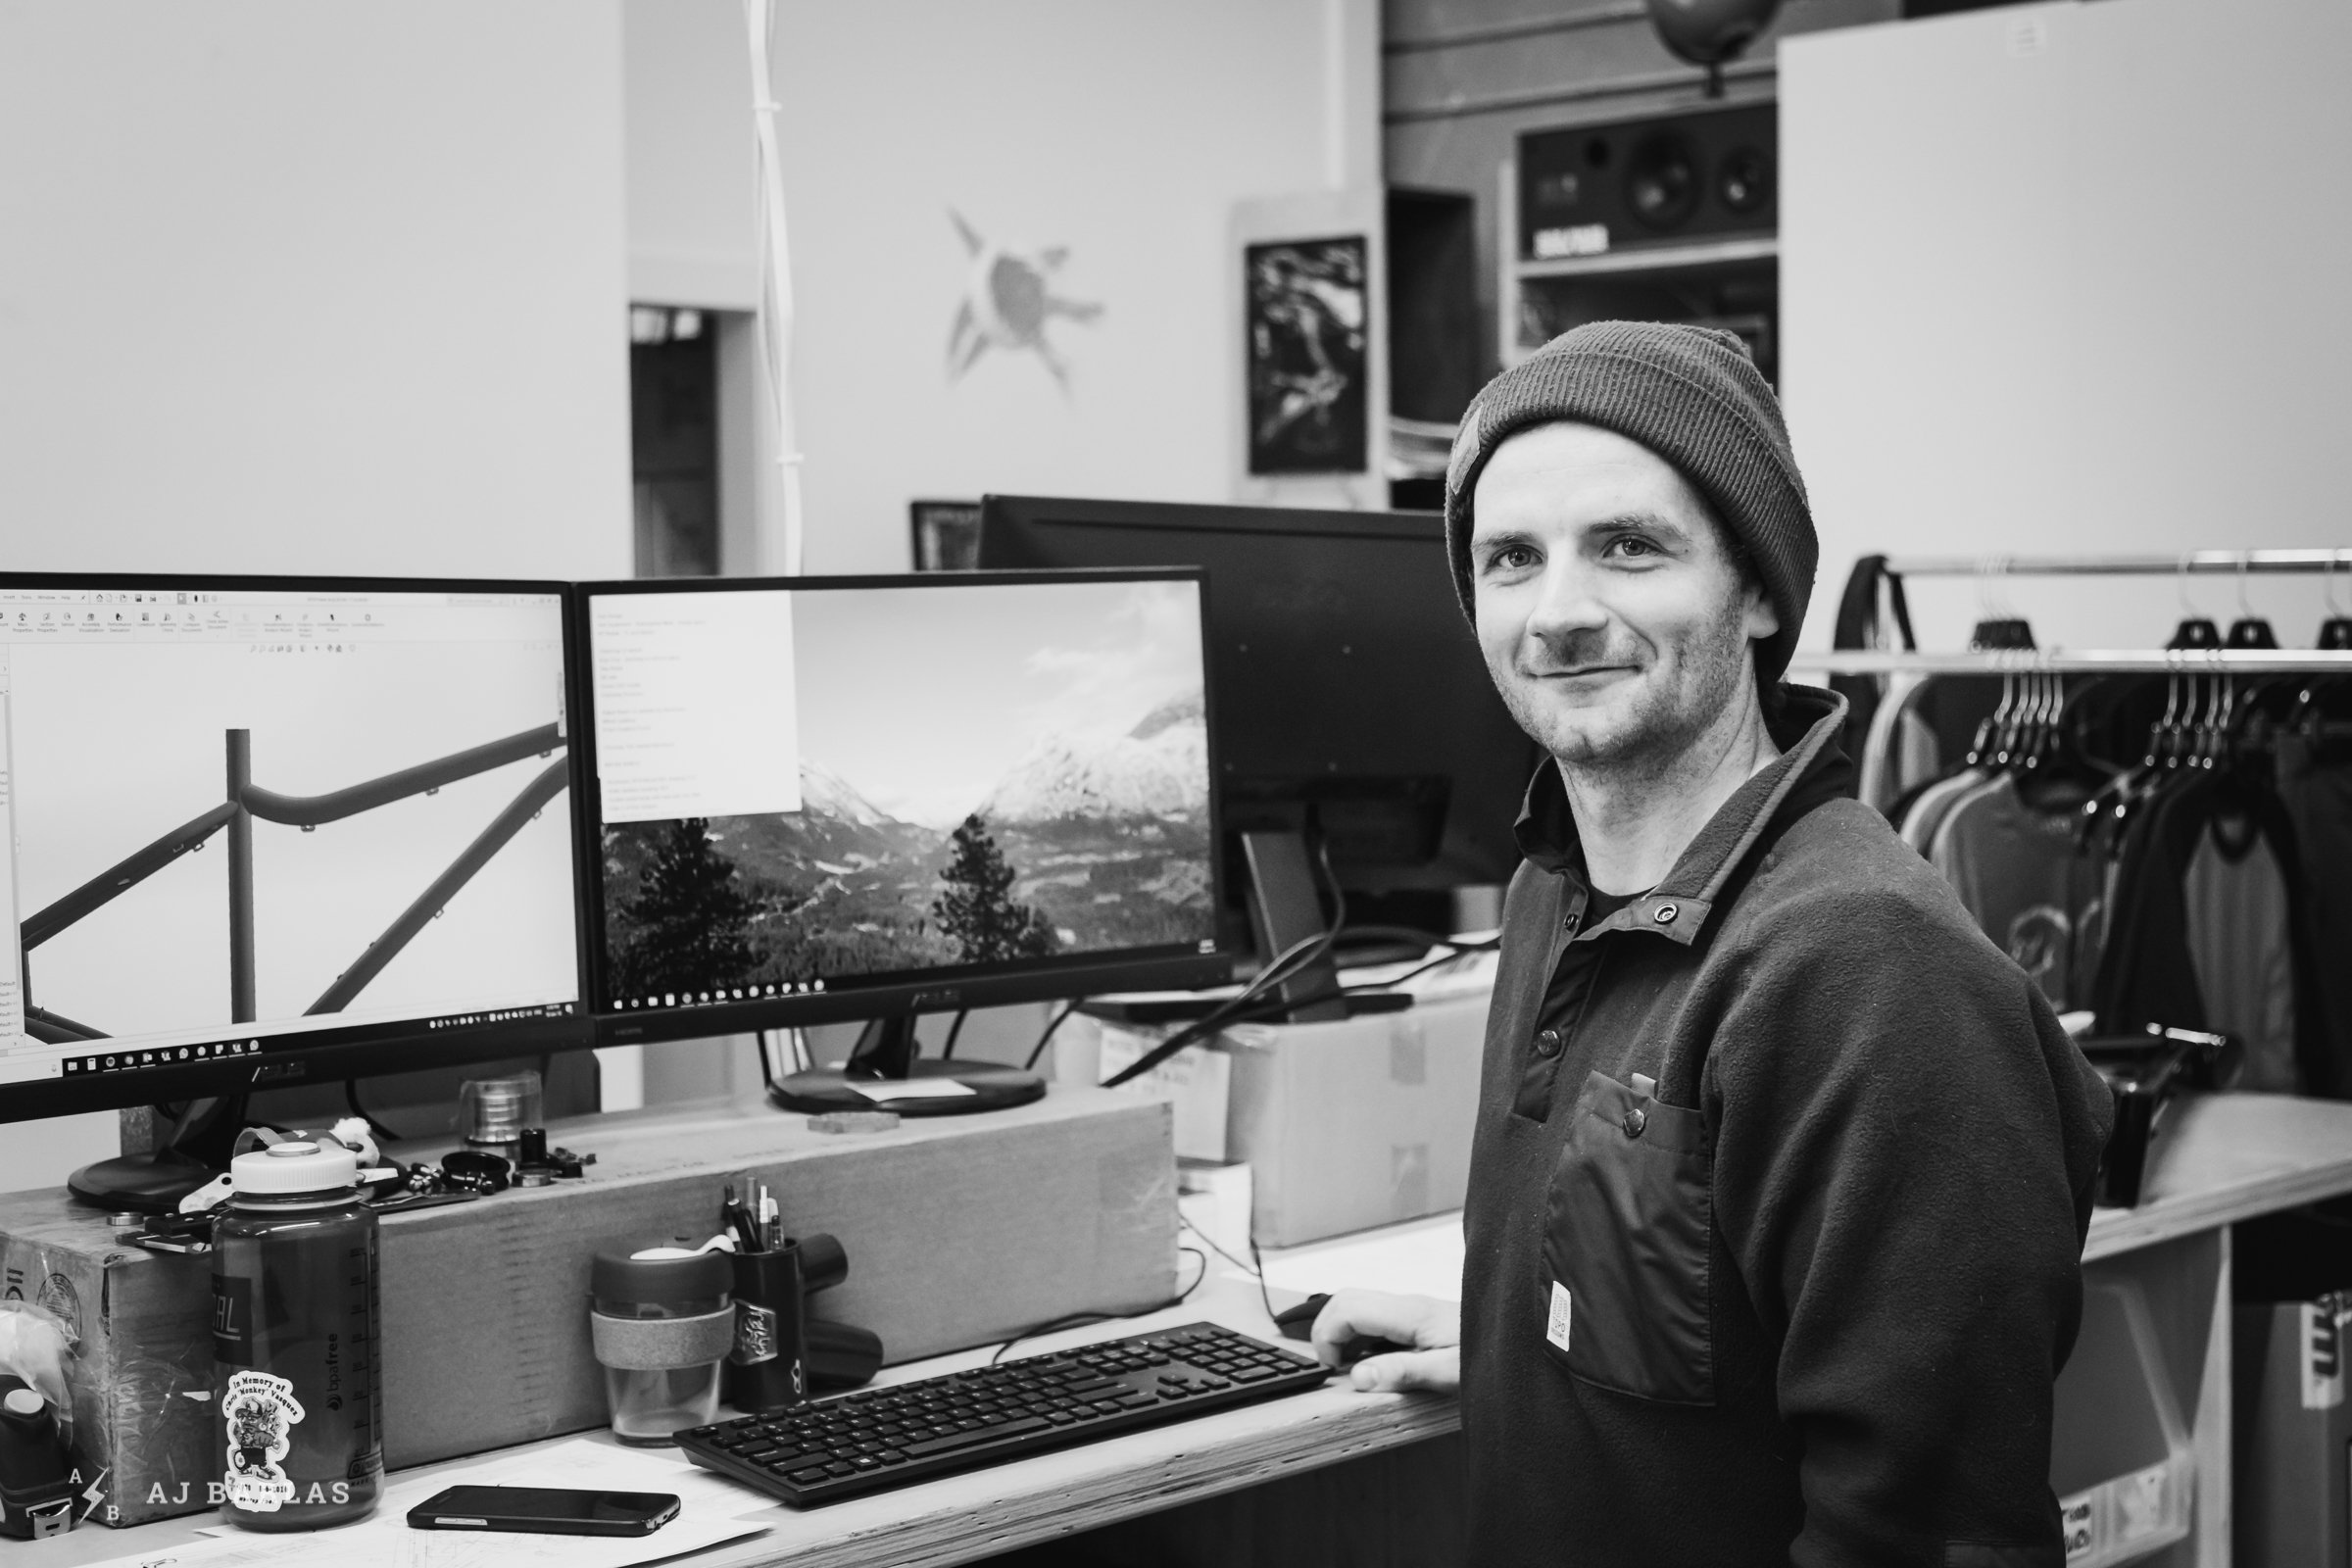 Chromag Staff - Ben Arnot is their new engineer and a mechanic for the YT Mob